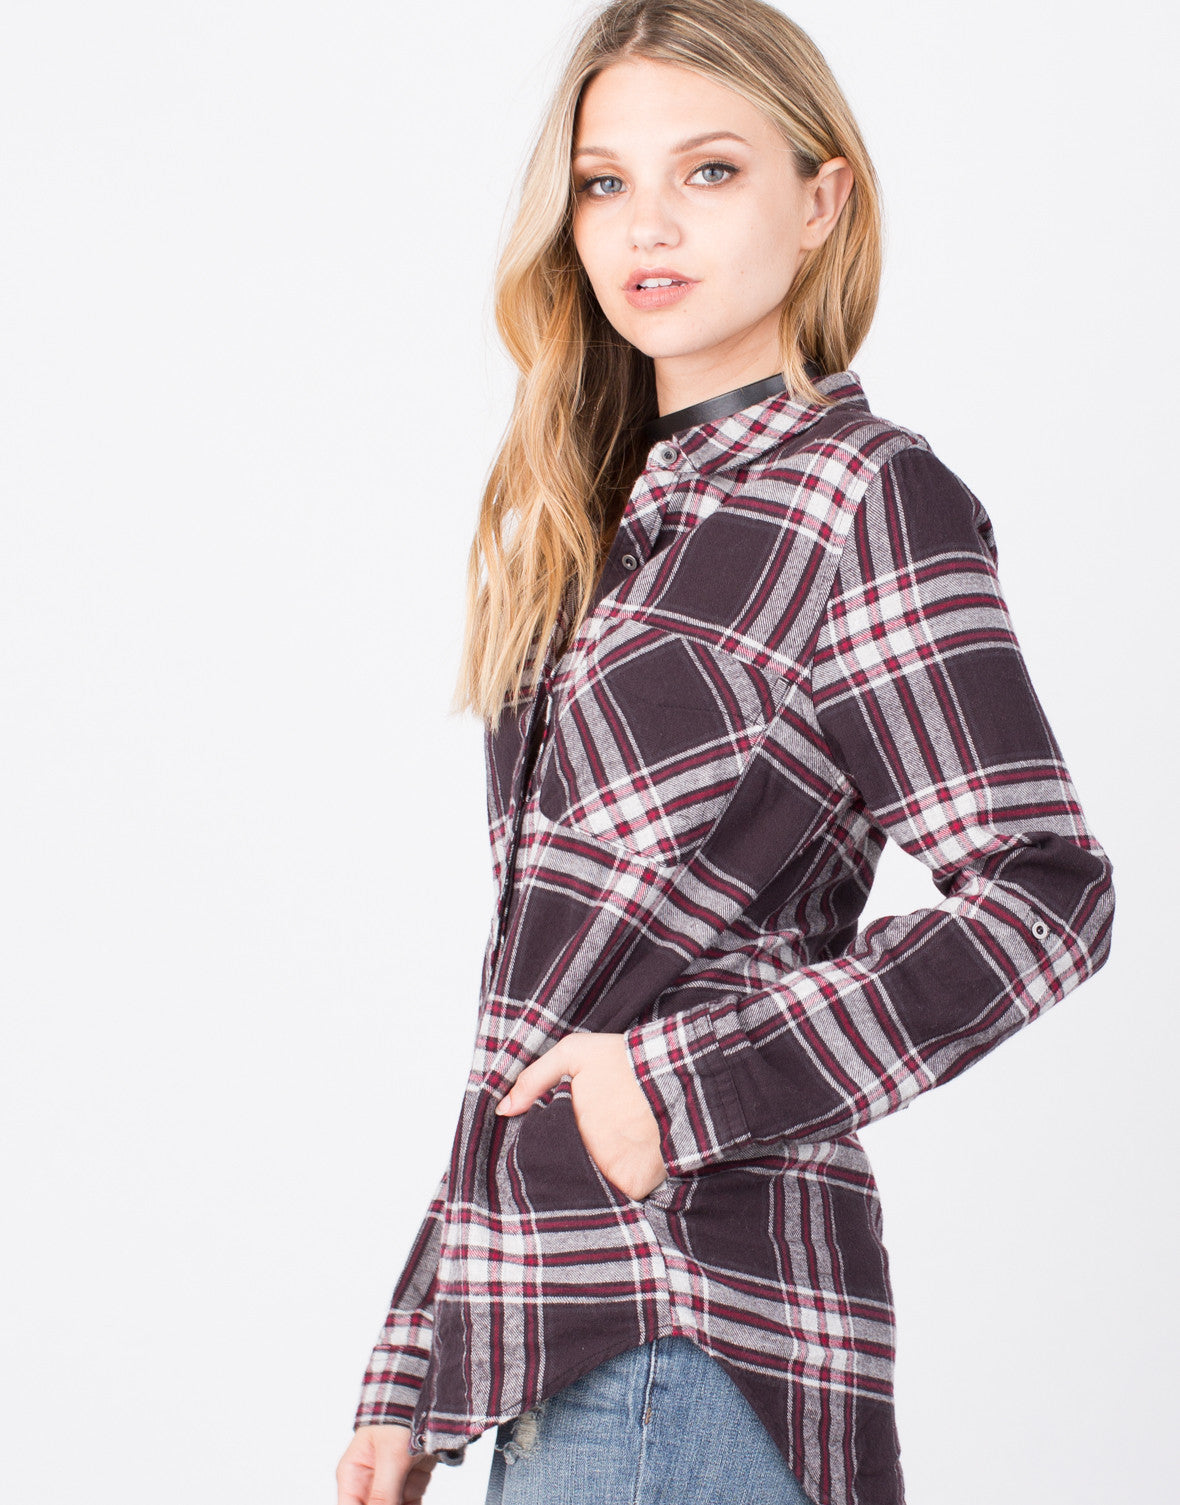 Detail of Plaid Flannel Top